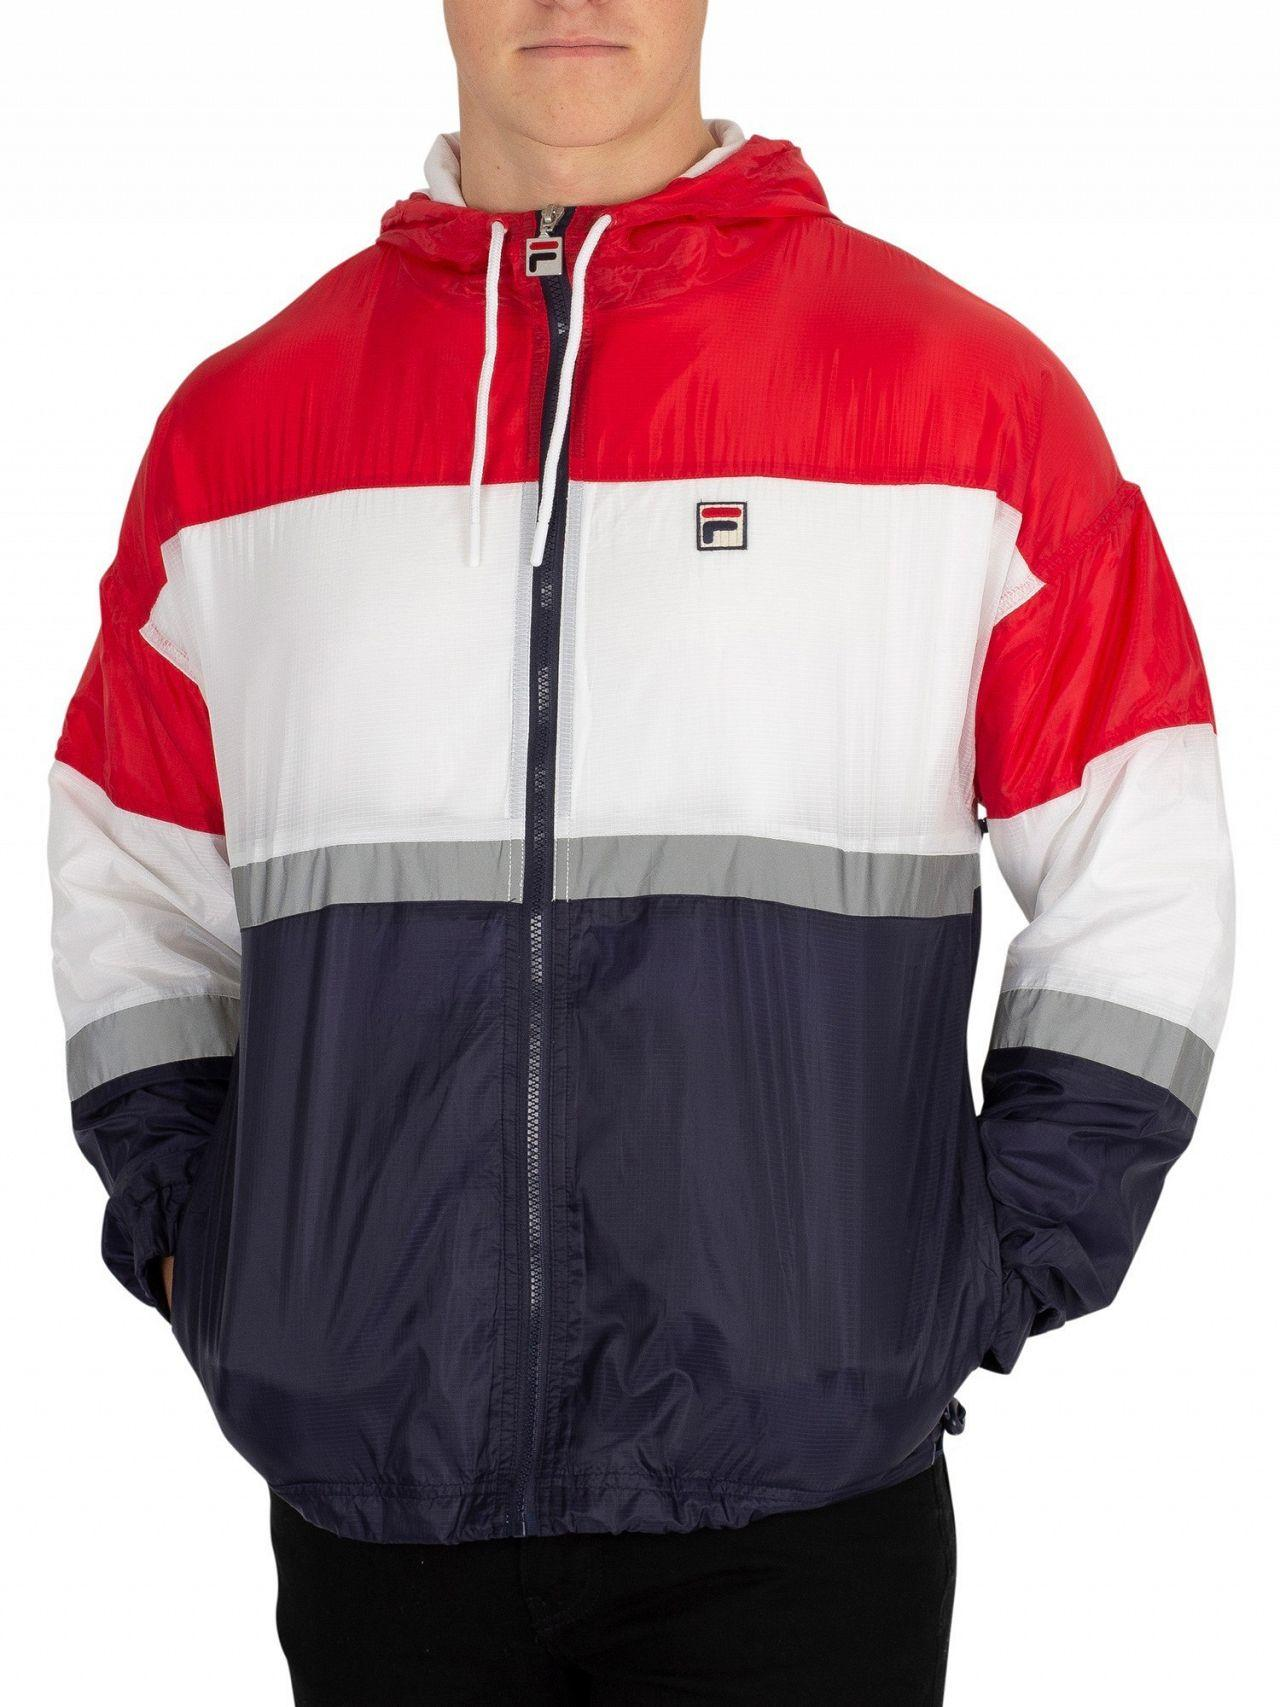 16a8f24b6 Fila Red/peacoat/white Cedric Rain Jacket in Red for Men - Lyst